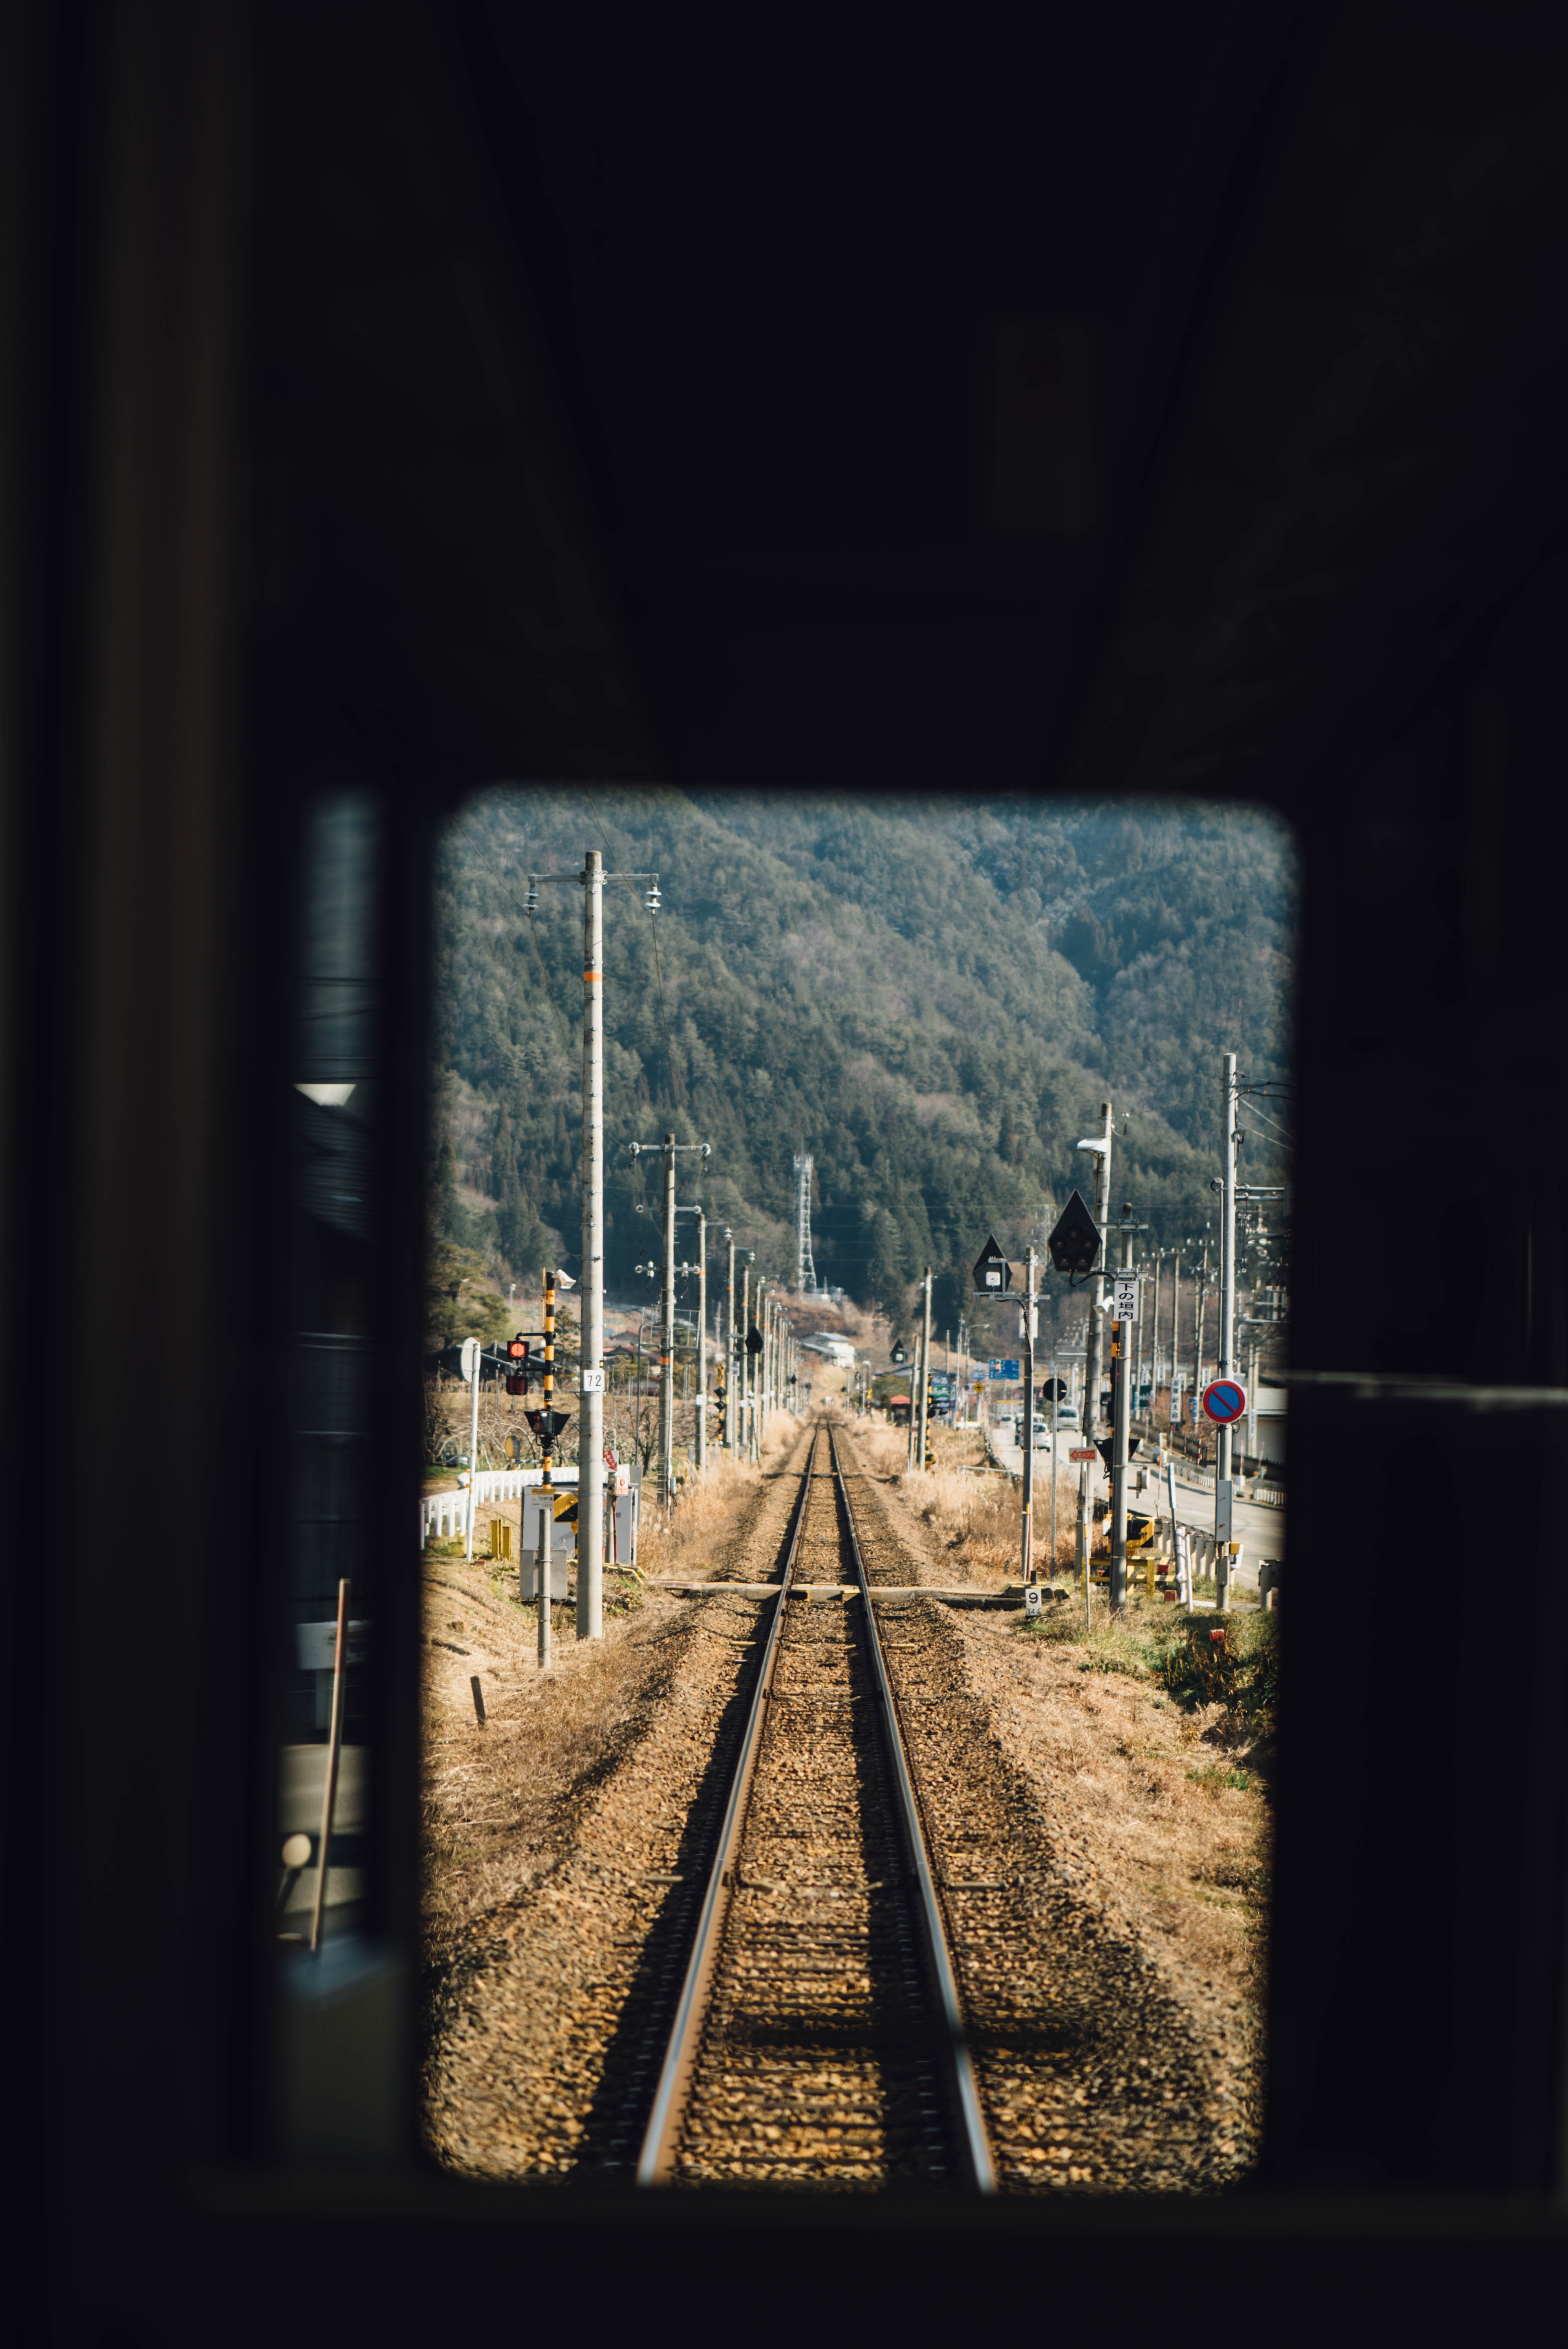 shallow focus photography of train rail near utility poles during daytime